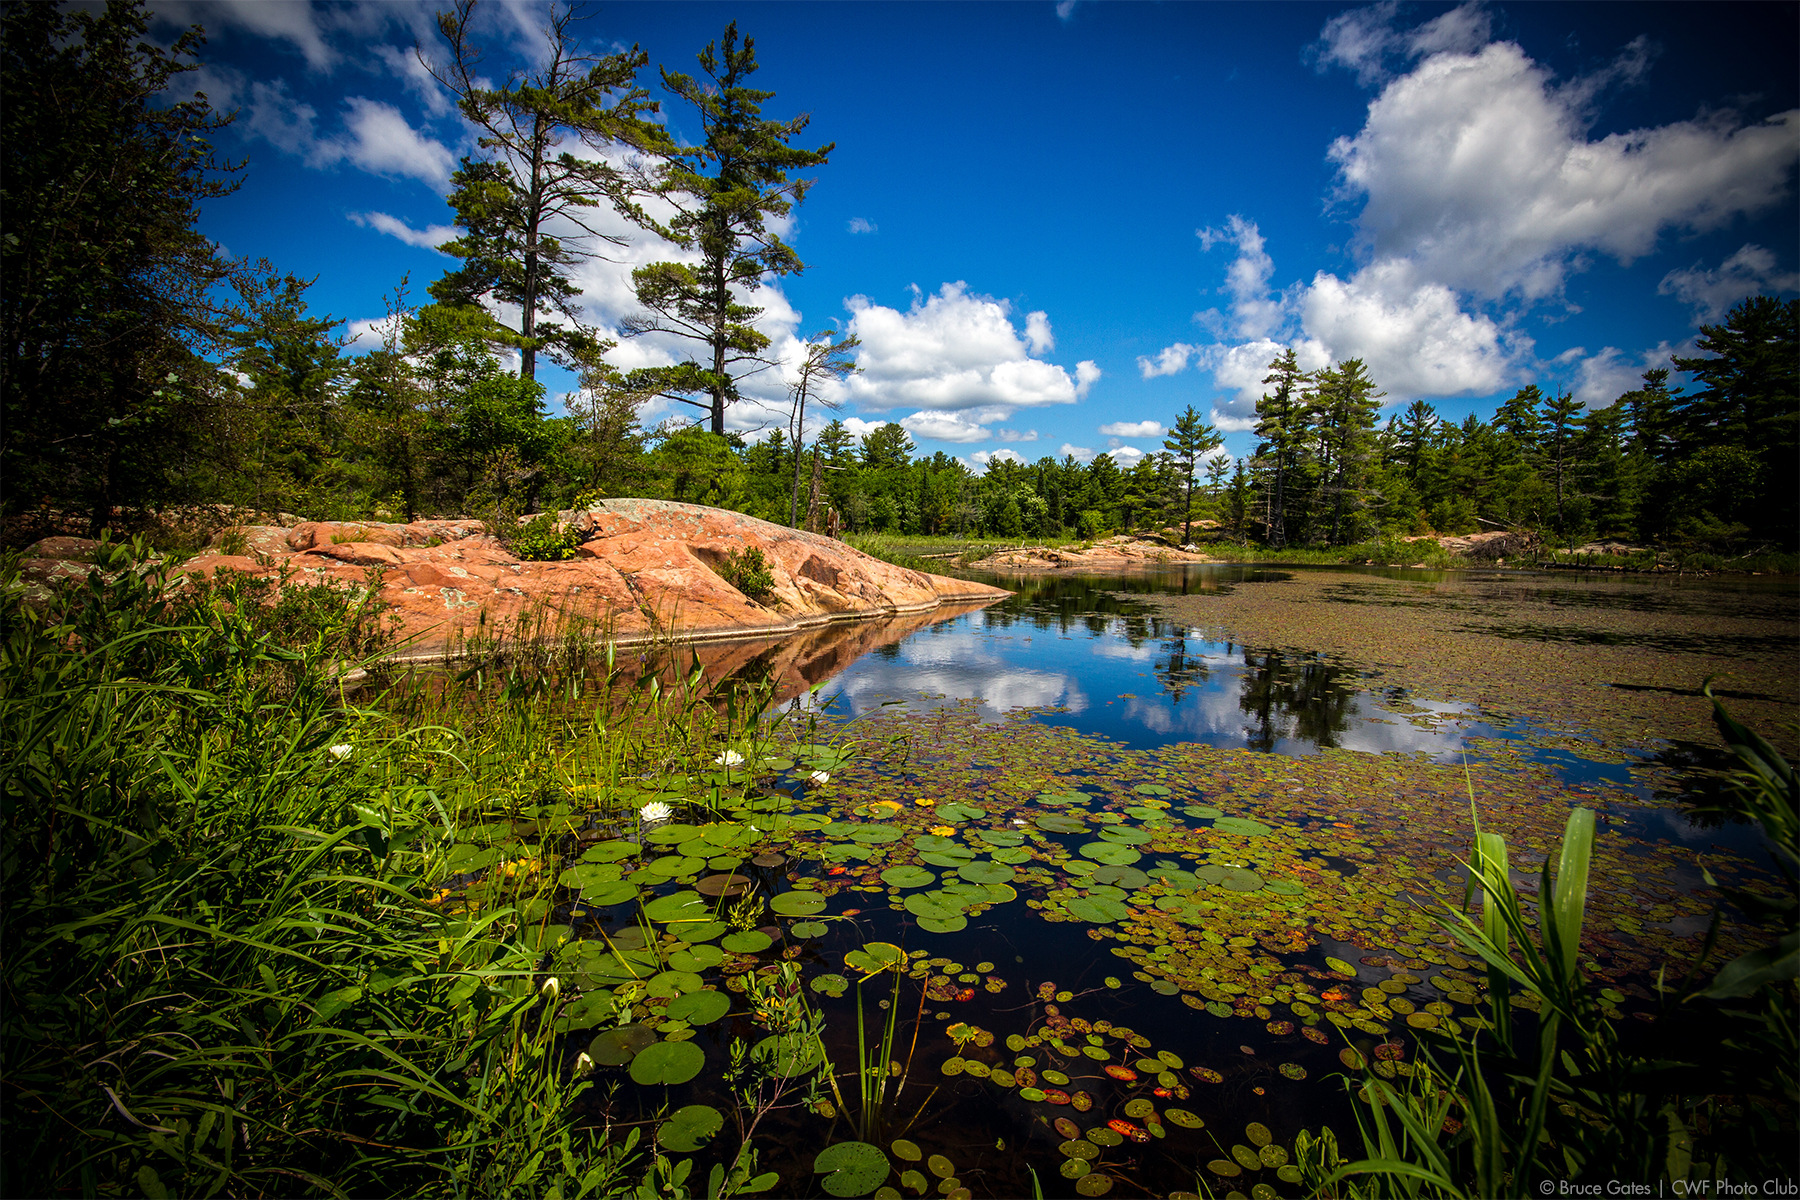 Playing on Your Phone Can Help Conserve Wetlands